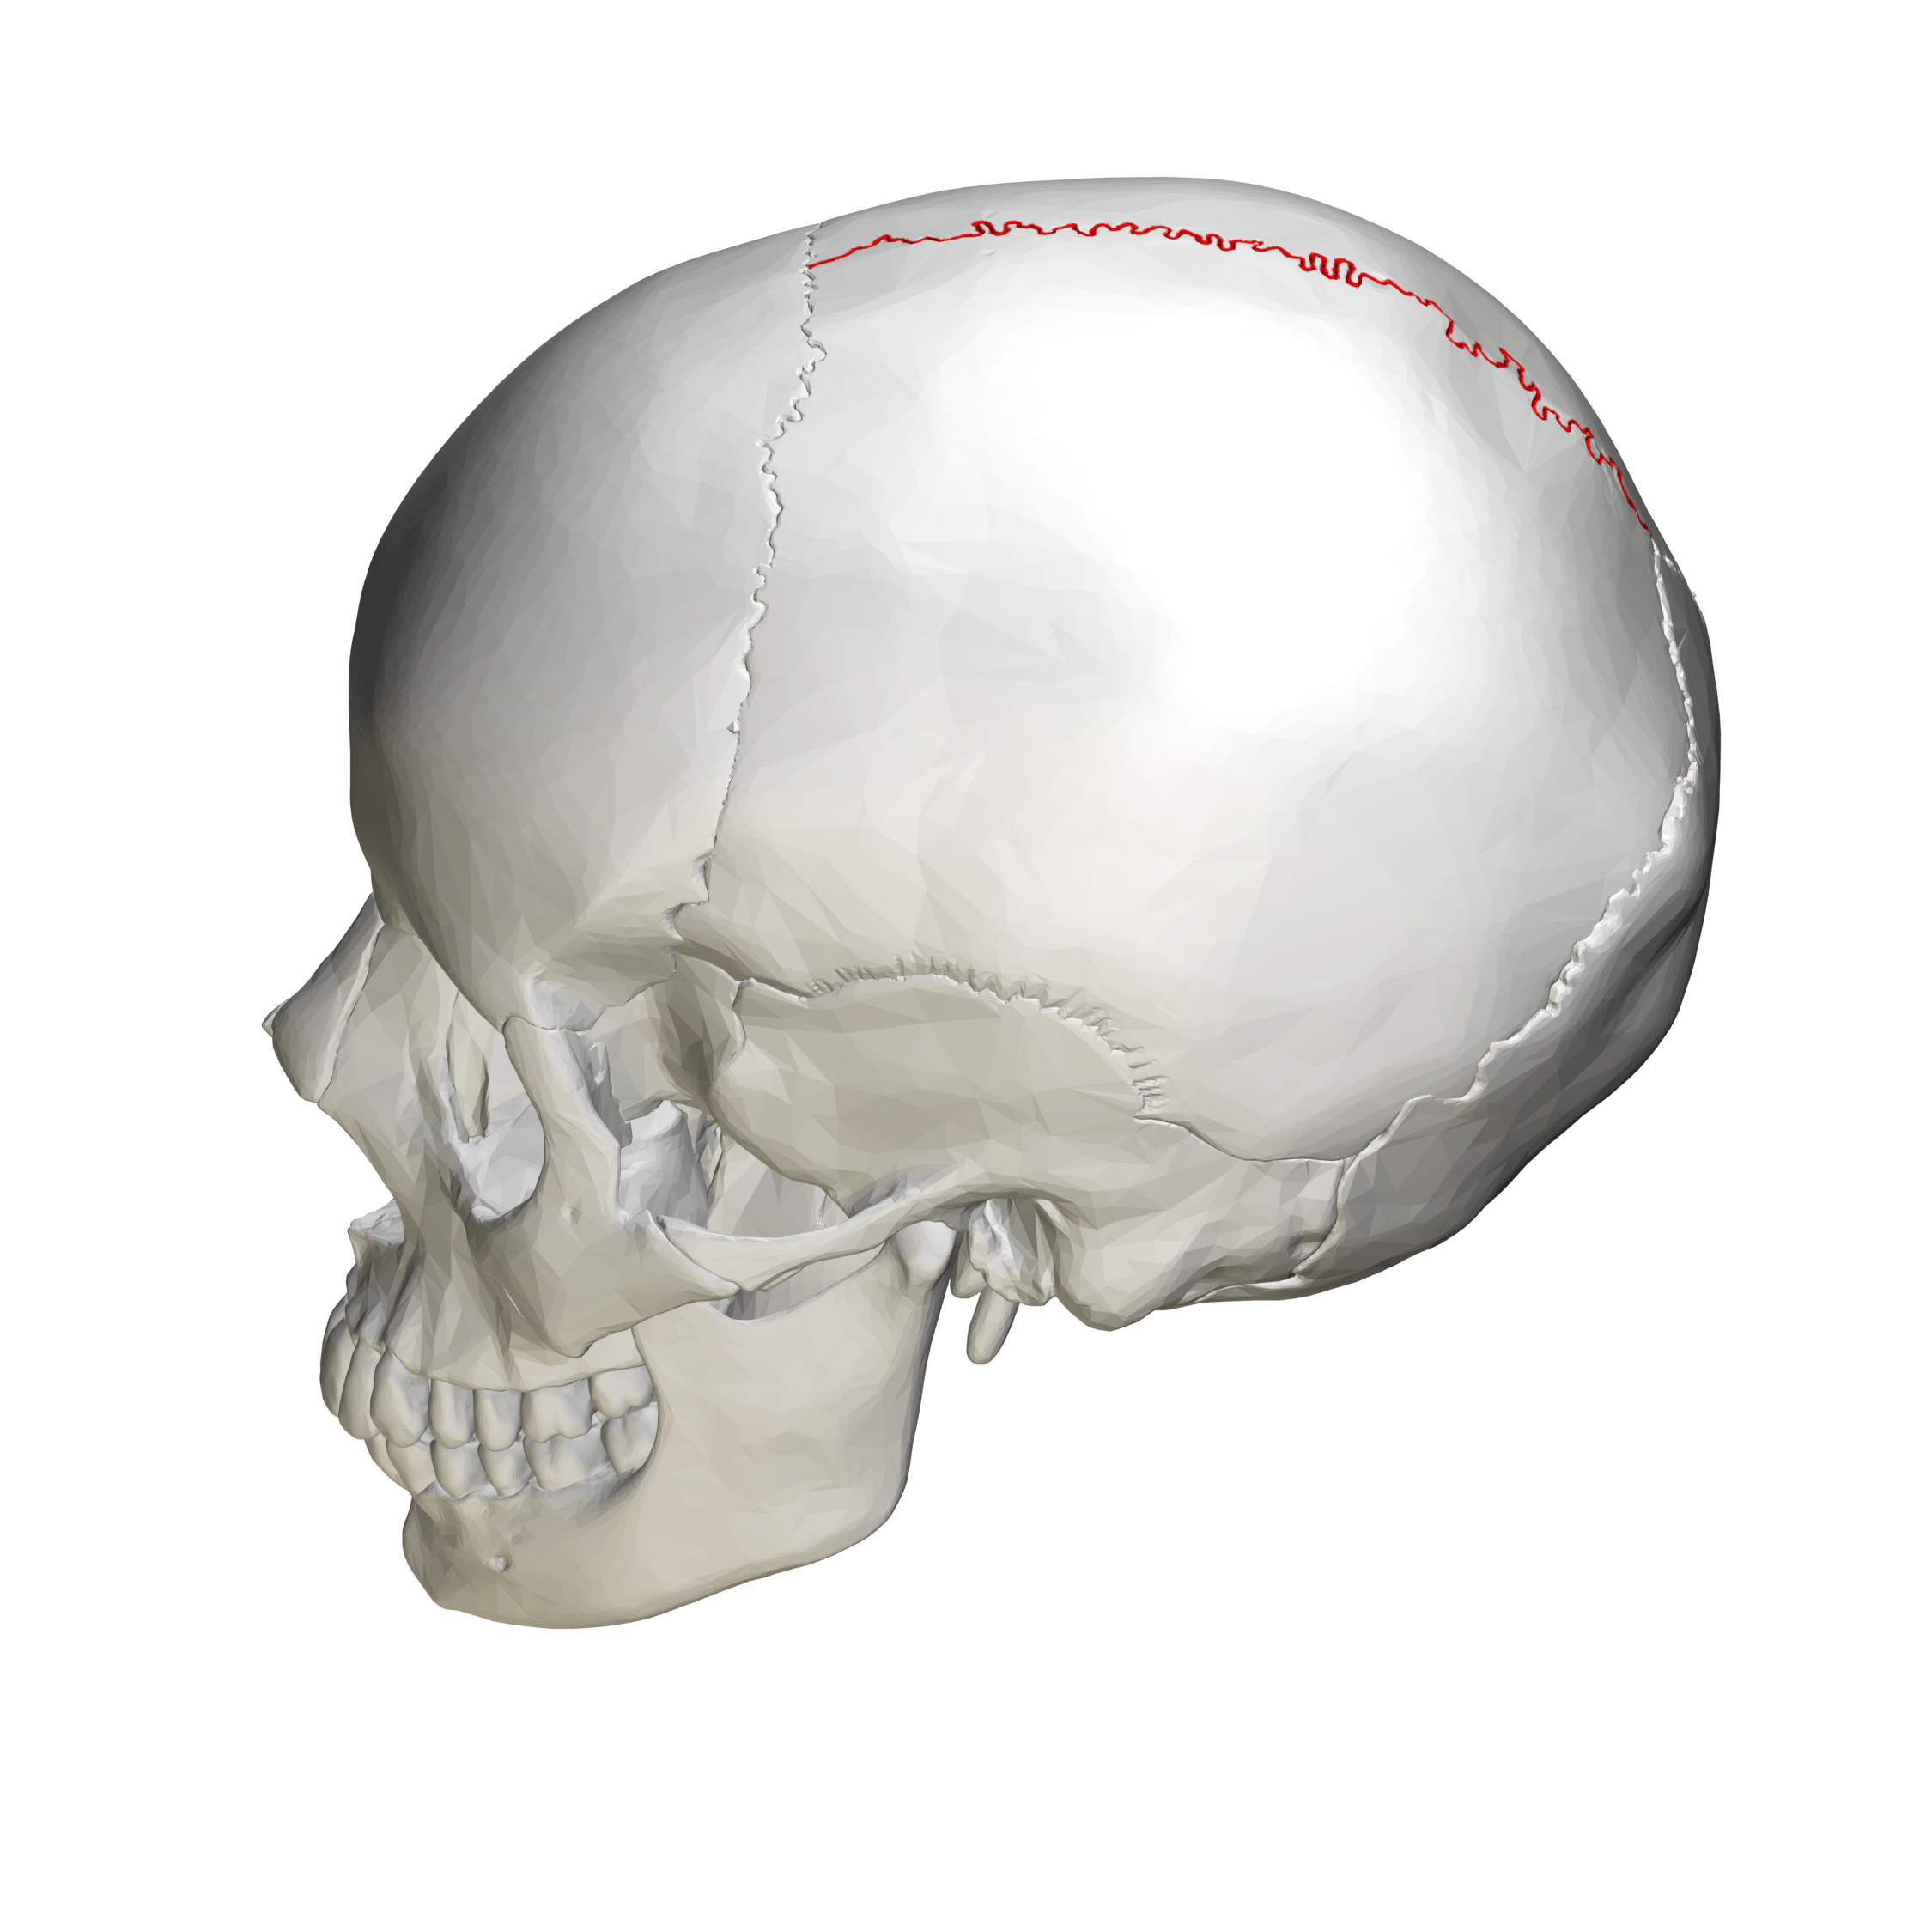 lateral view skull sutures diagram 2001 mitsubishi montero belt file sagittal suture view02 png